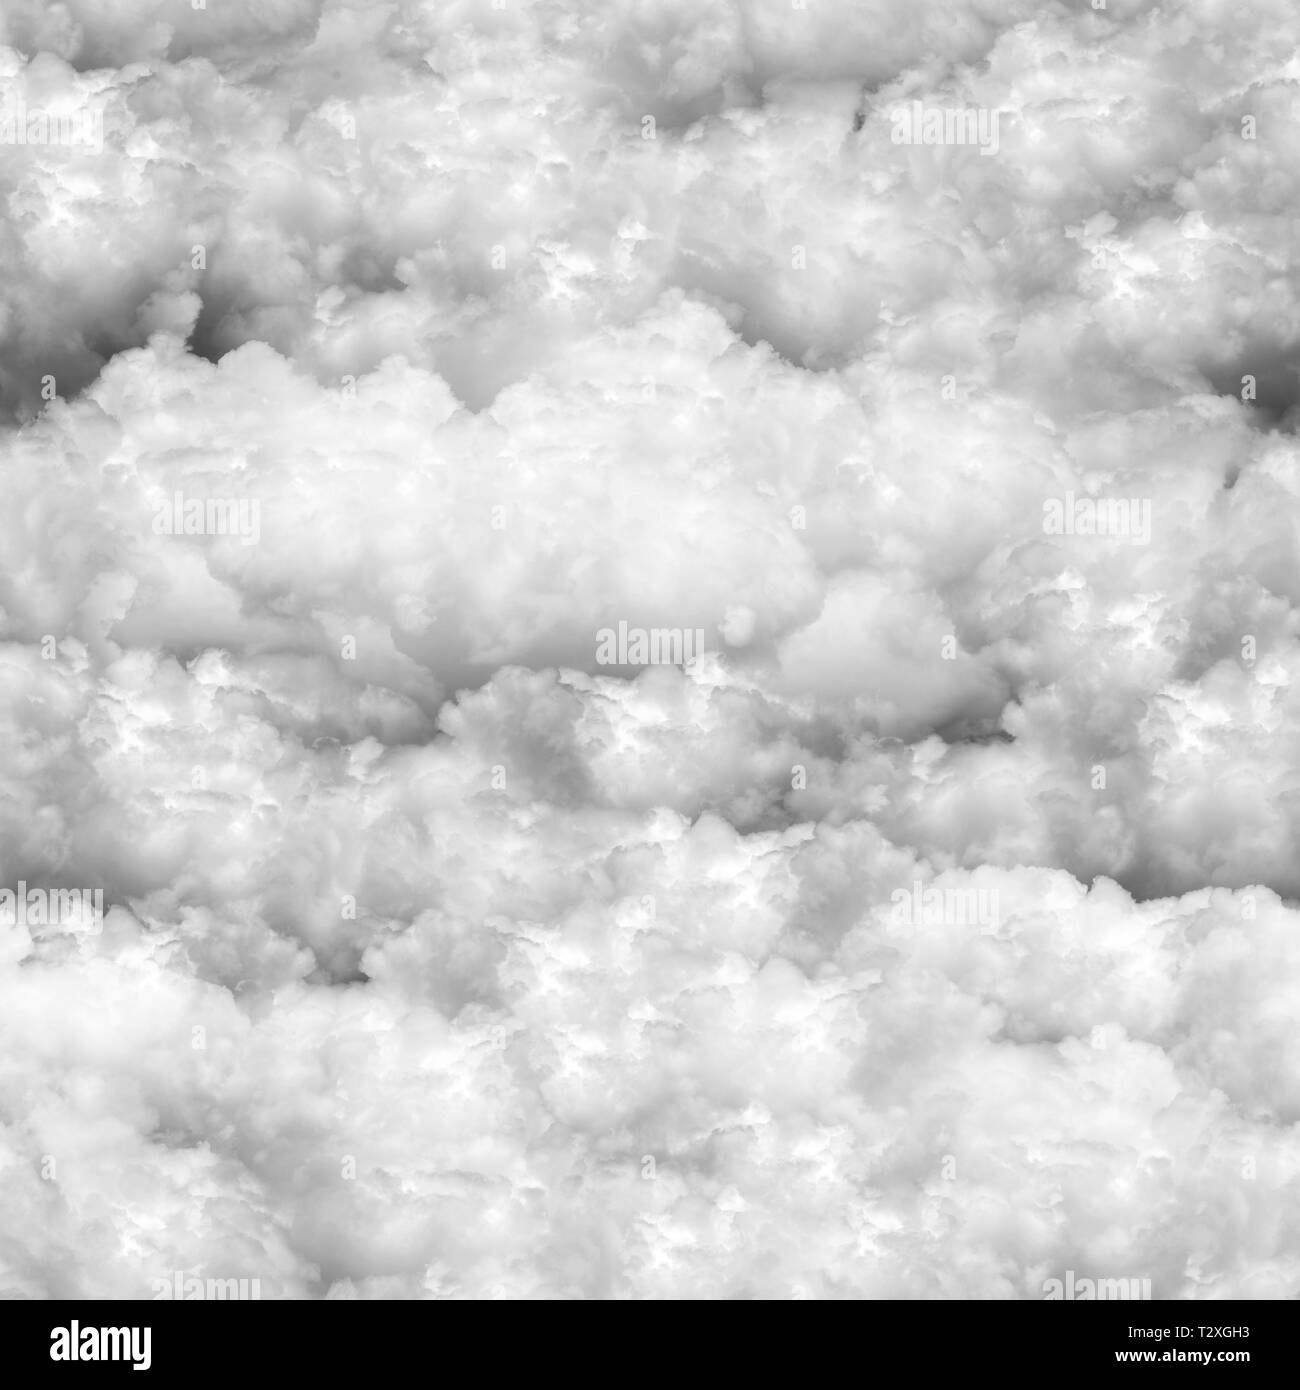 seamless photographic clouds natural background, black and white - Stock Image